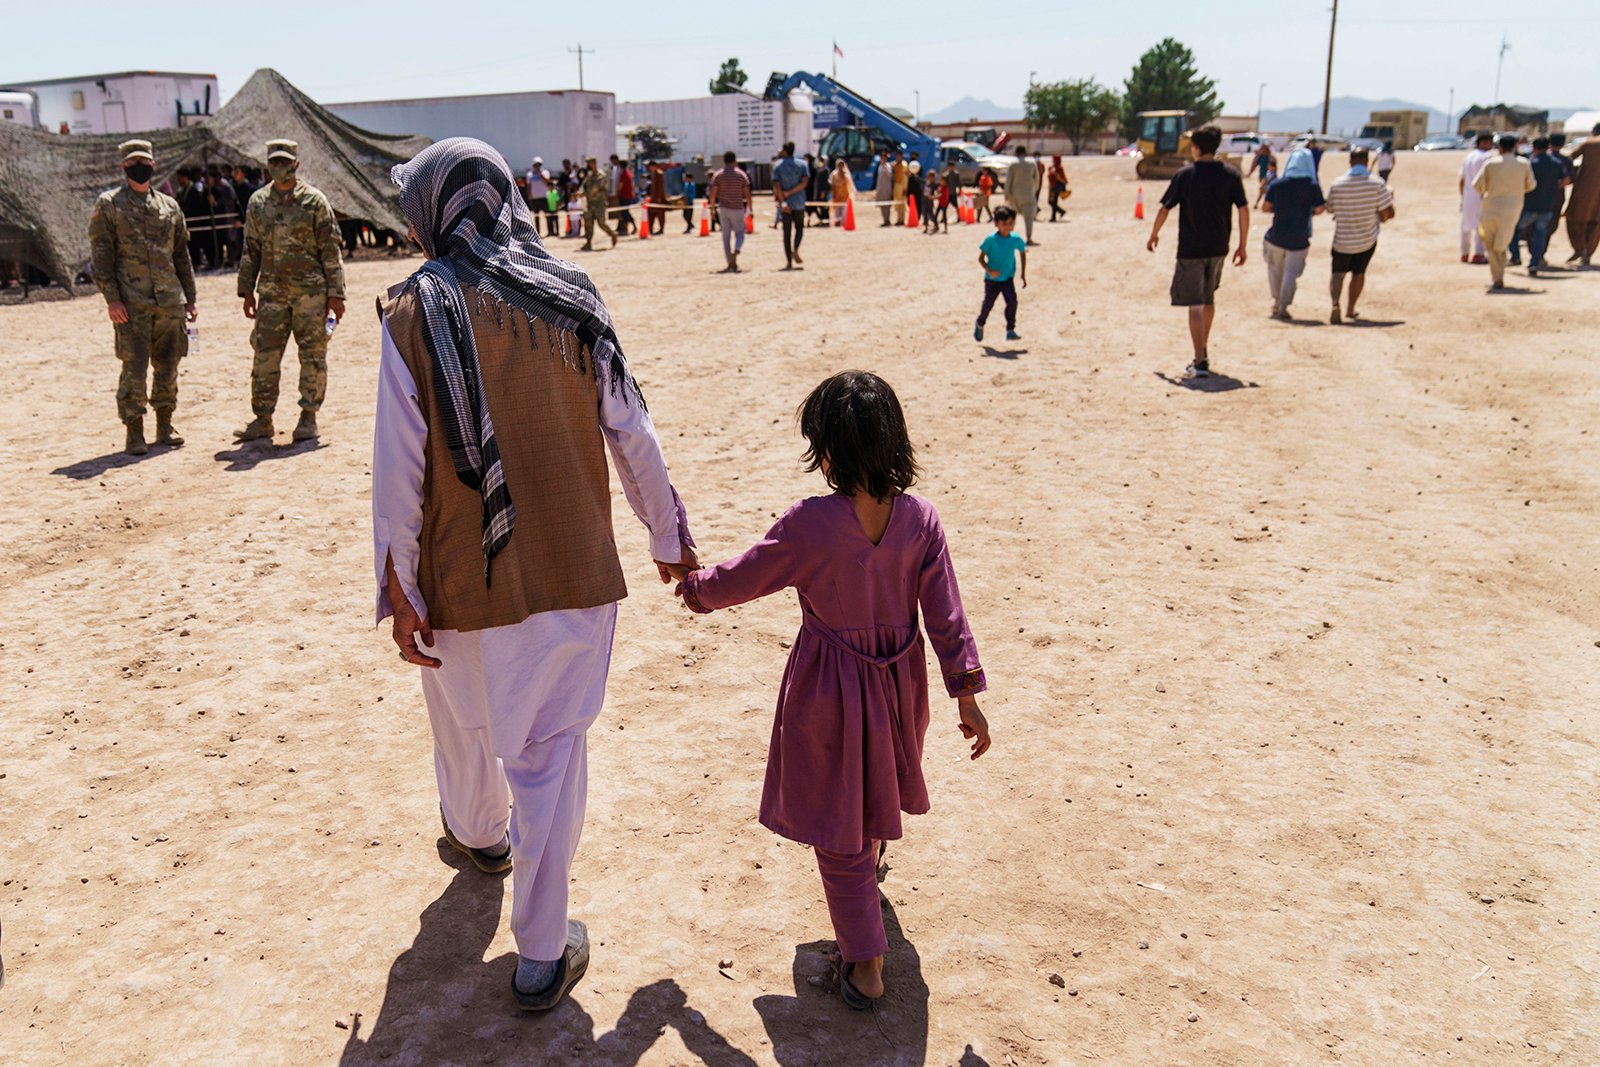 A man walks with a child through the Doña Ana Village of Fort Bliss, where Afghan refugees are being housed, in New Mexico, Sept. 10, 2021. The Biden administration provided the first public look inside the U.S. military base where Afghans airlifted out of Afghanistan are screened, amid questions about how the government is caring for the refugees and vetting them. (AP Photo/David Goldman)